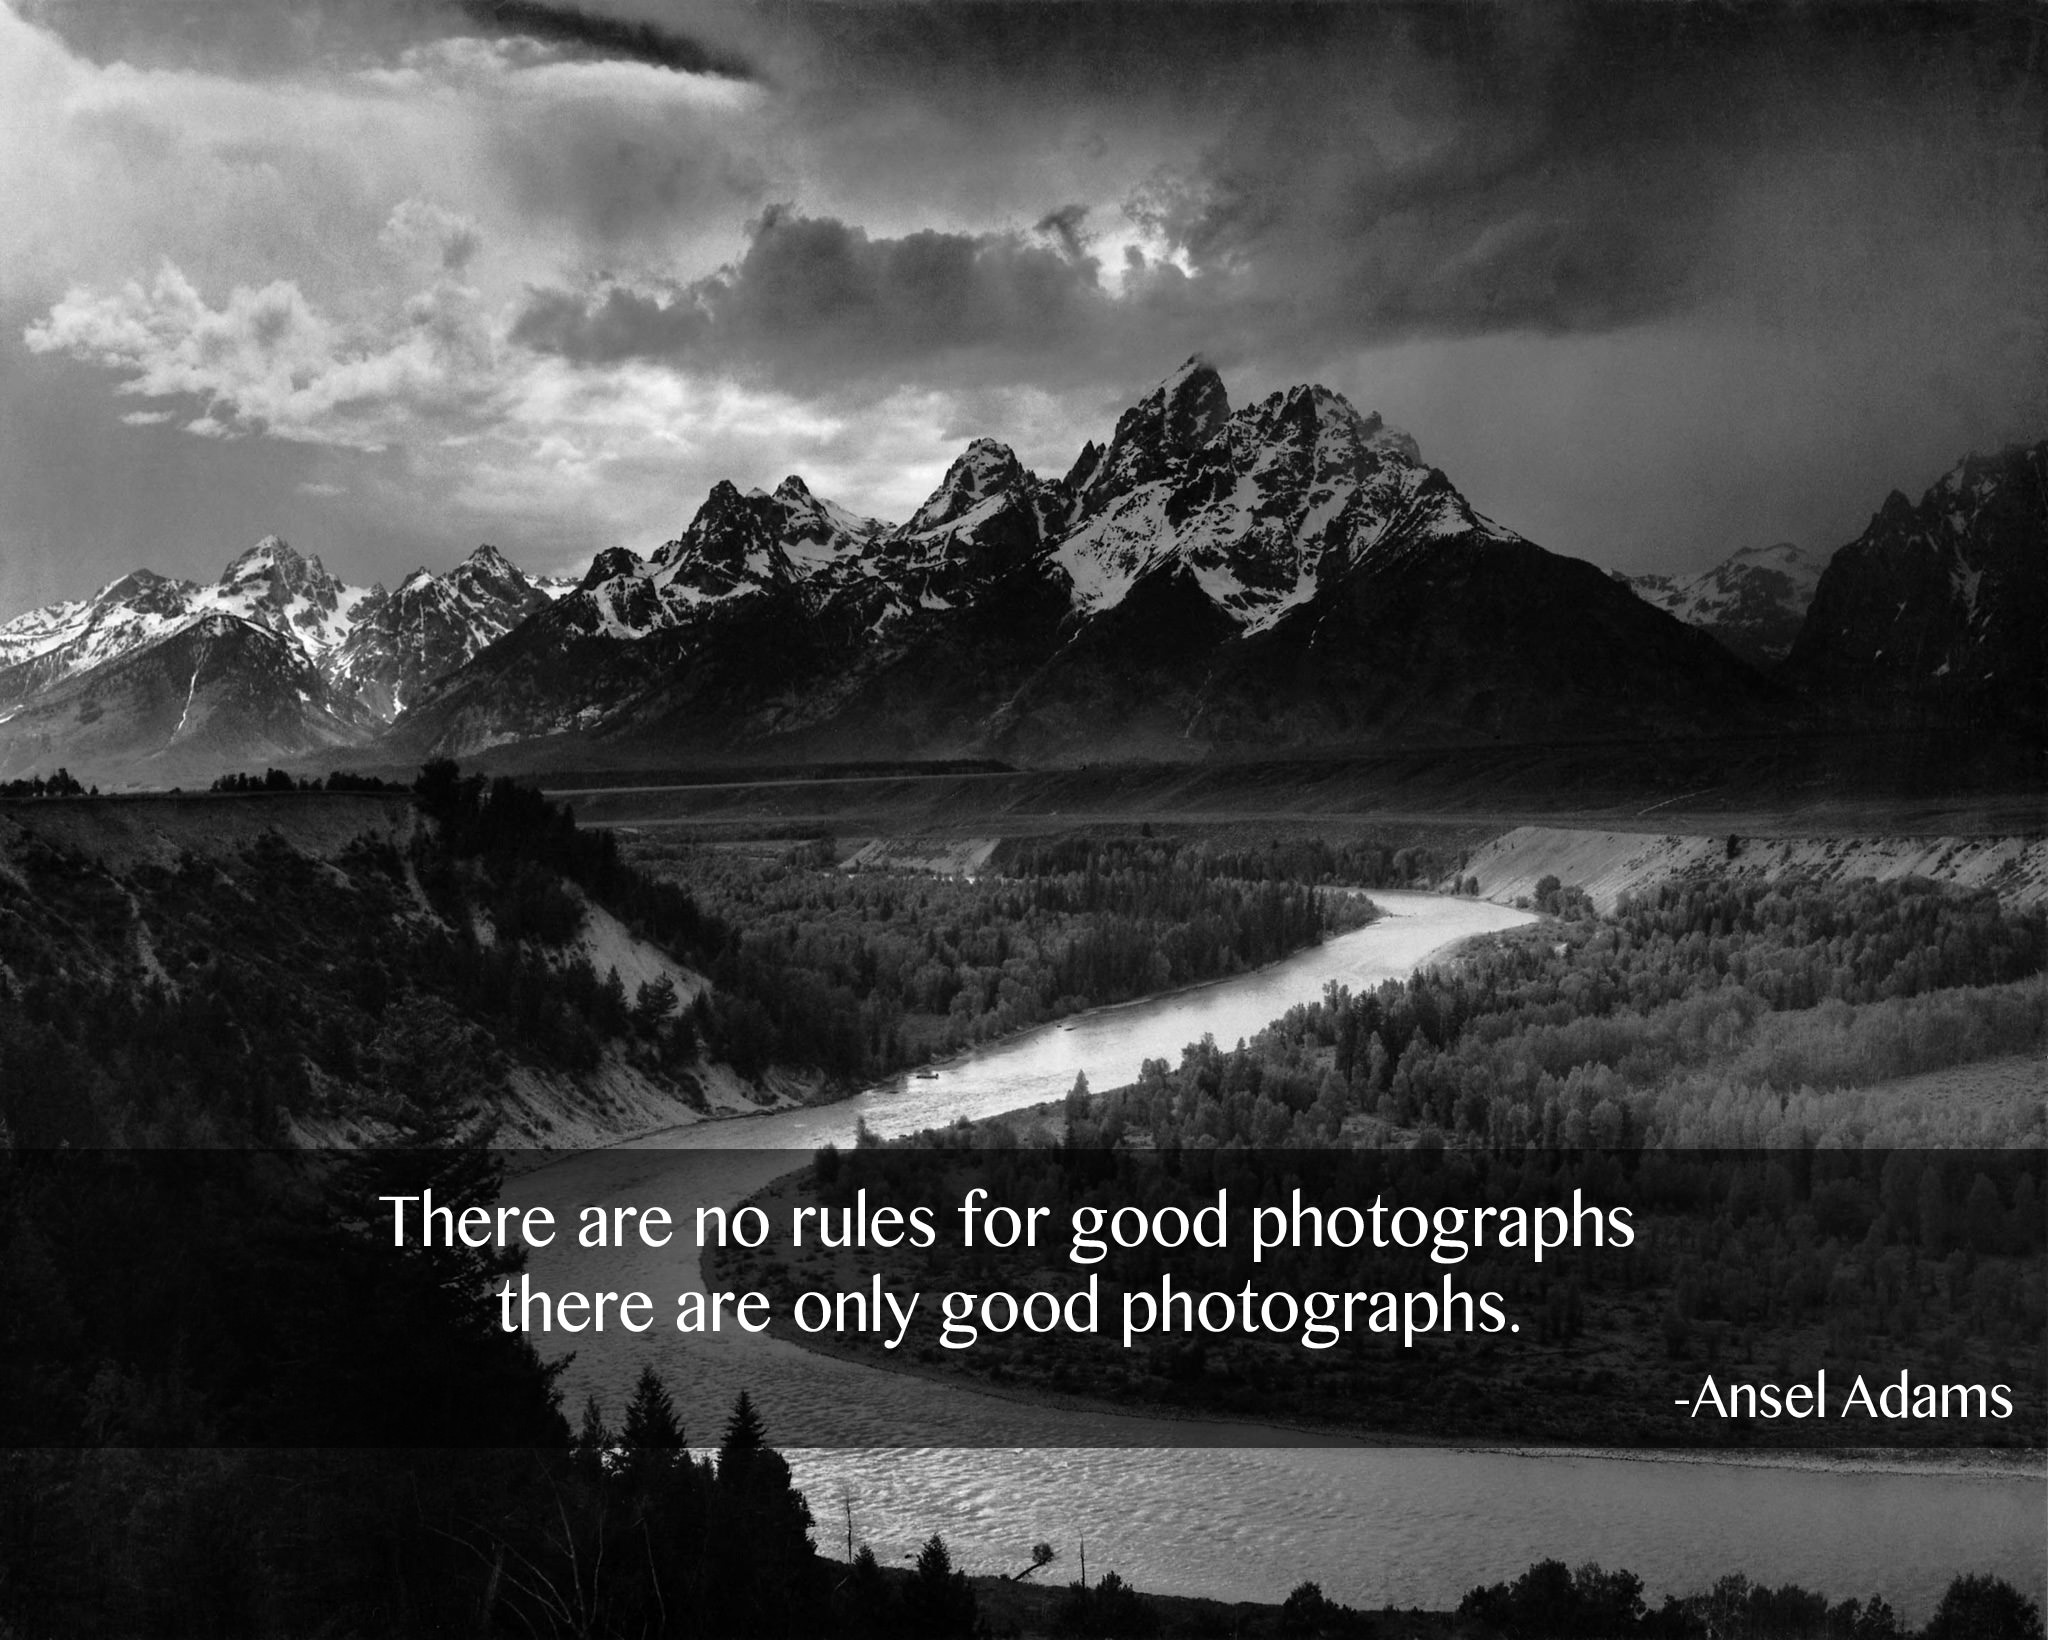 9 Most Inspirational Photography Quotes of All Time